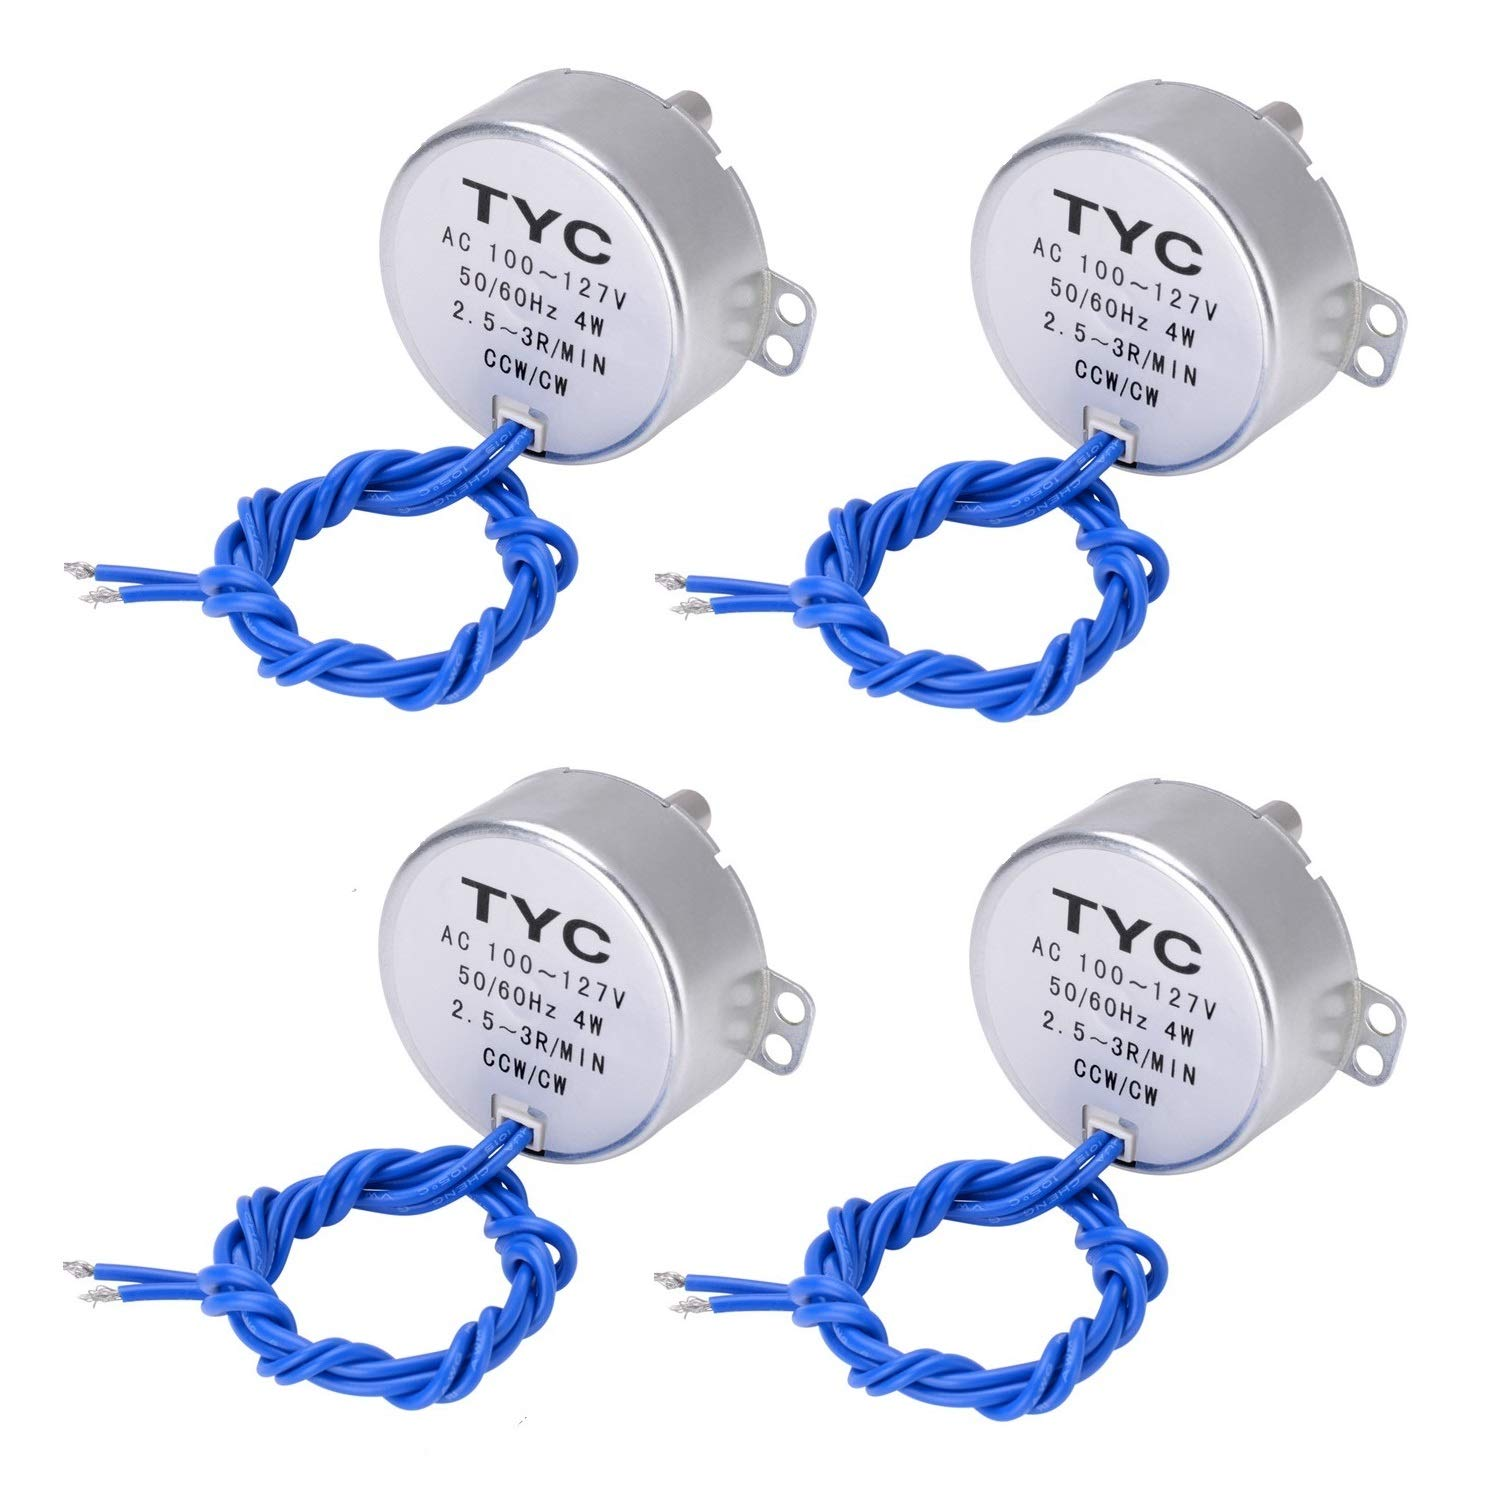 Synchronous Synchron Motor Electric Synchron Motor Turntable Motor Cup Turner Motor 110V 100-127VAC 50/60 Hz 4W 2.5-3RPM/MIN CCW/CW Direction for Hand-Made, School Project, Model or Guide Motor (4PCS)